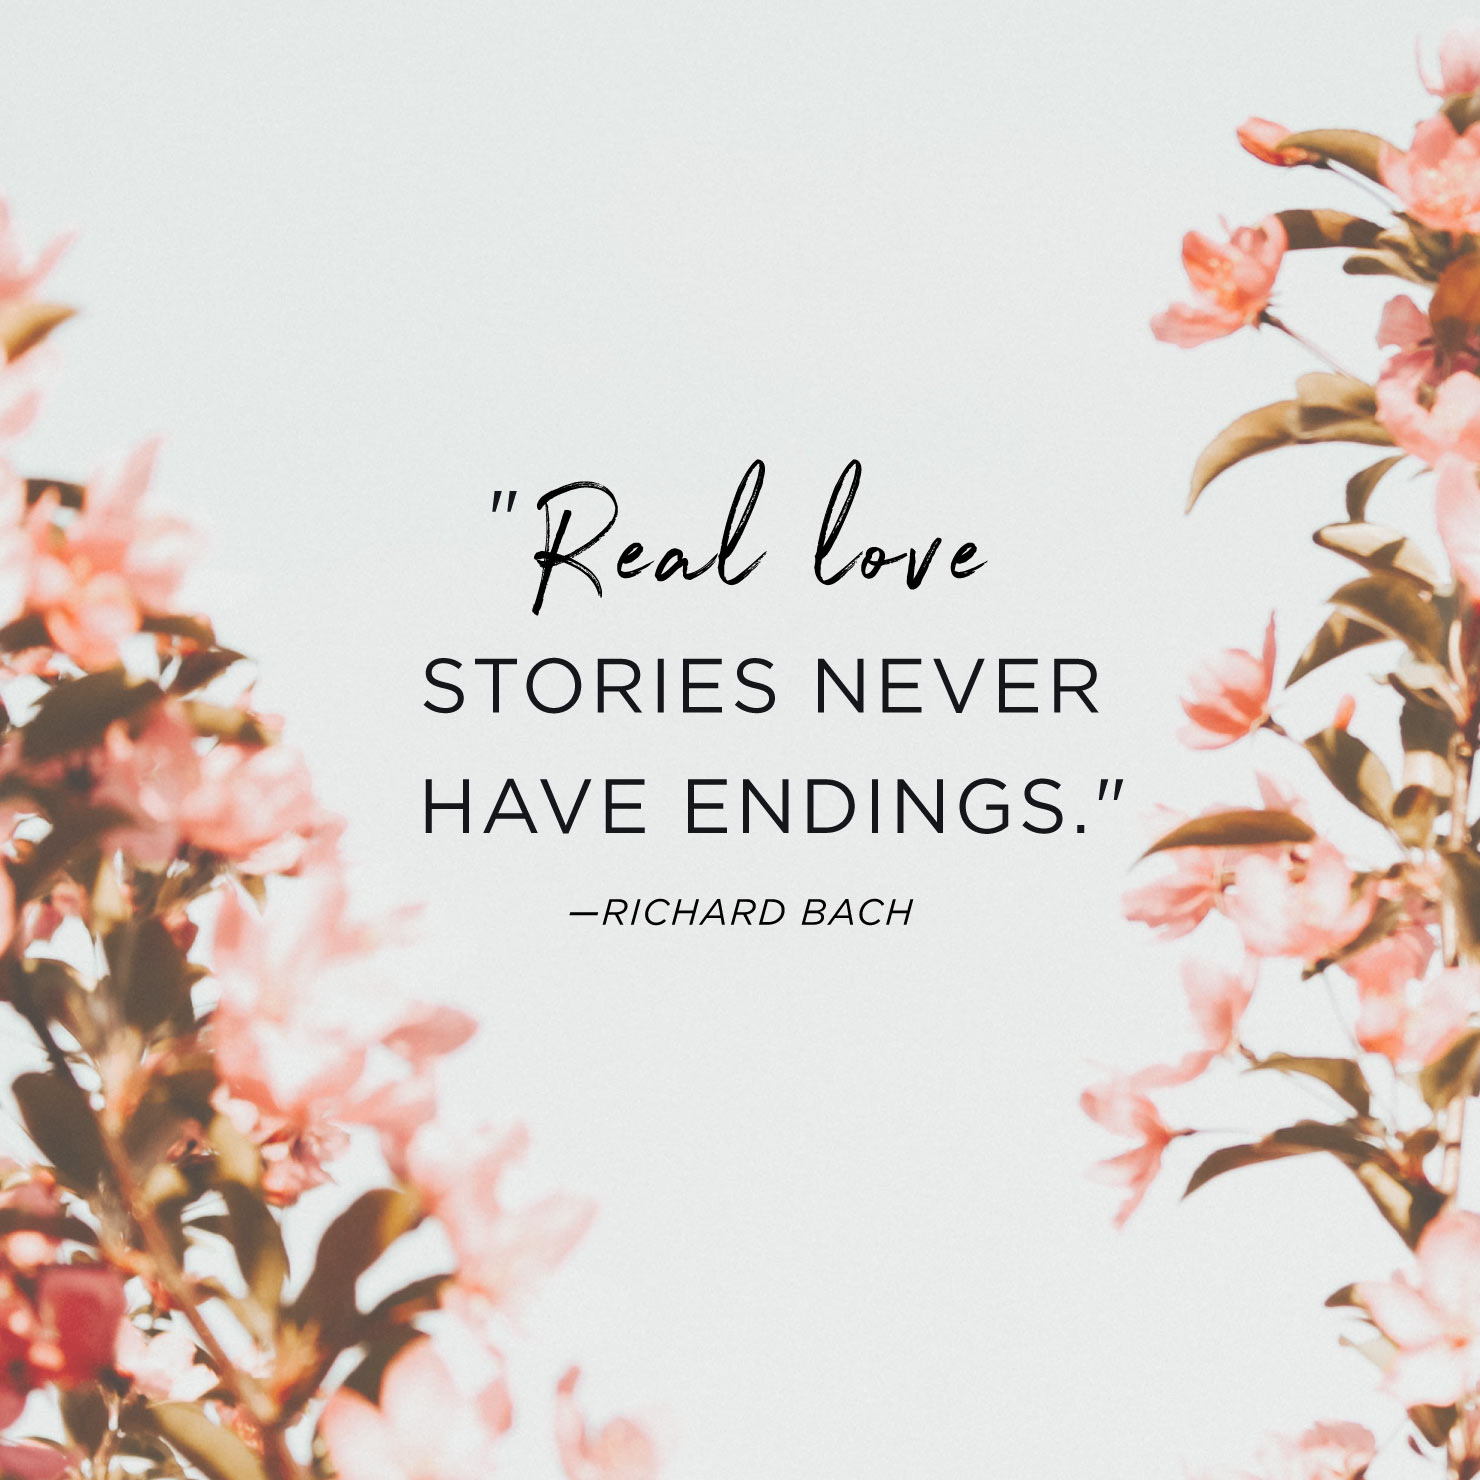 Quote above background image: Real love stories never have endings. - Richard Bach